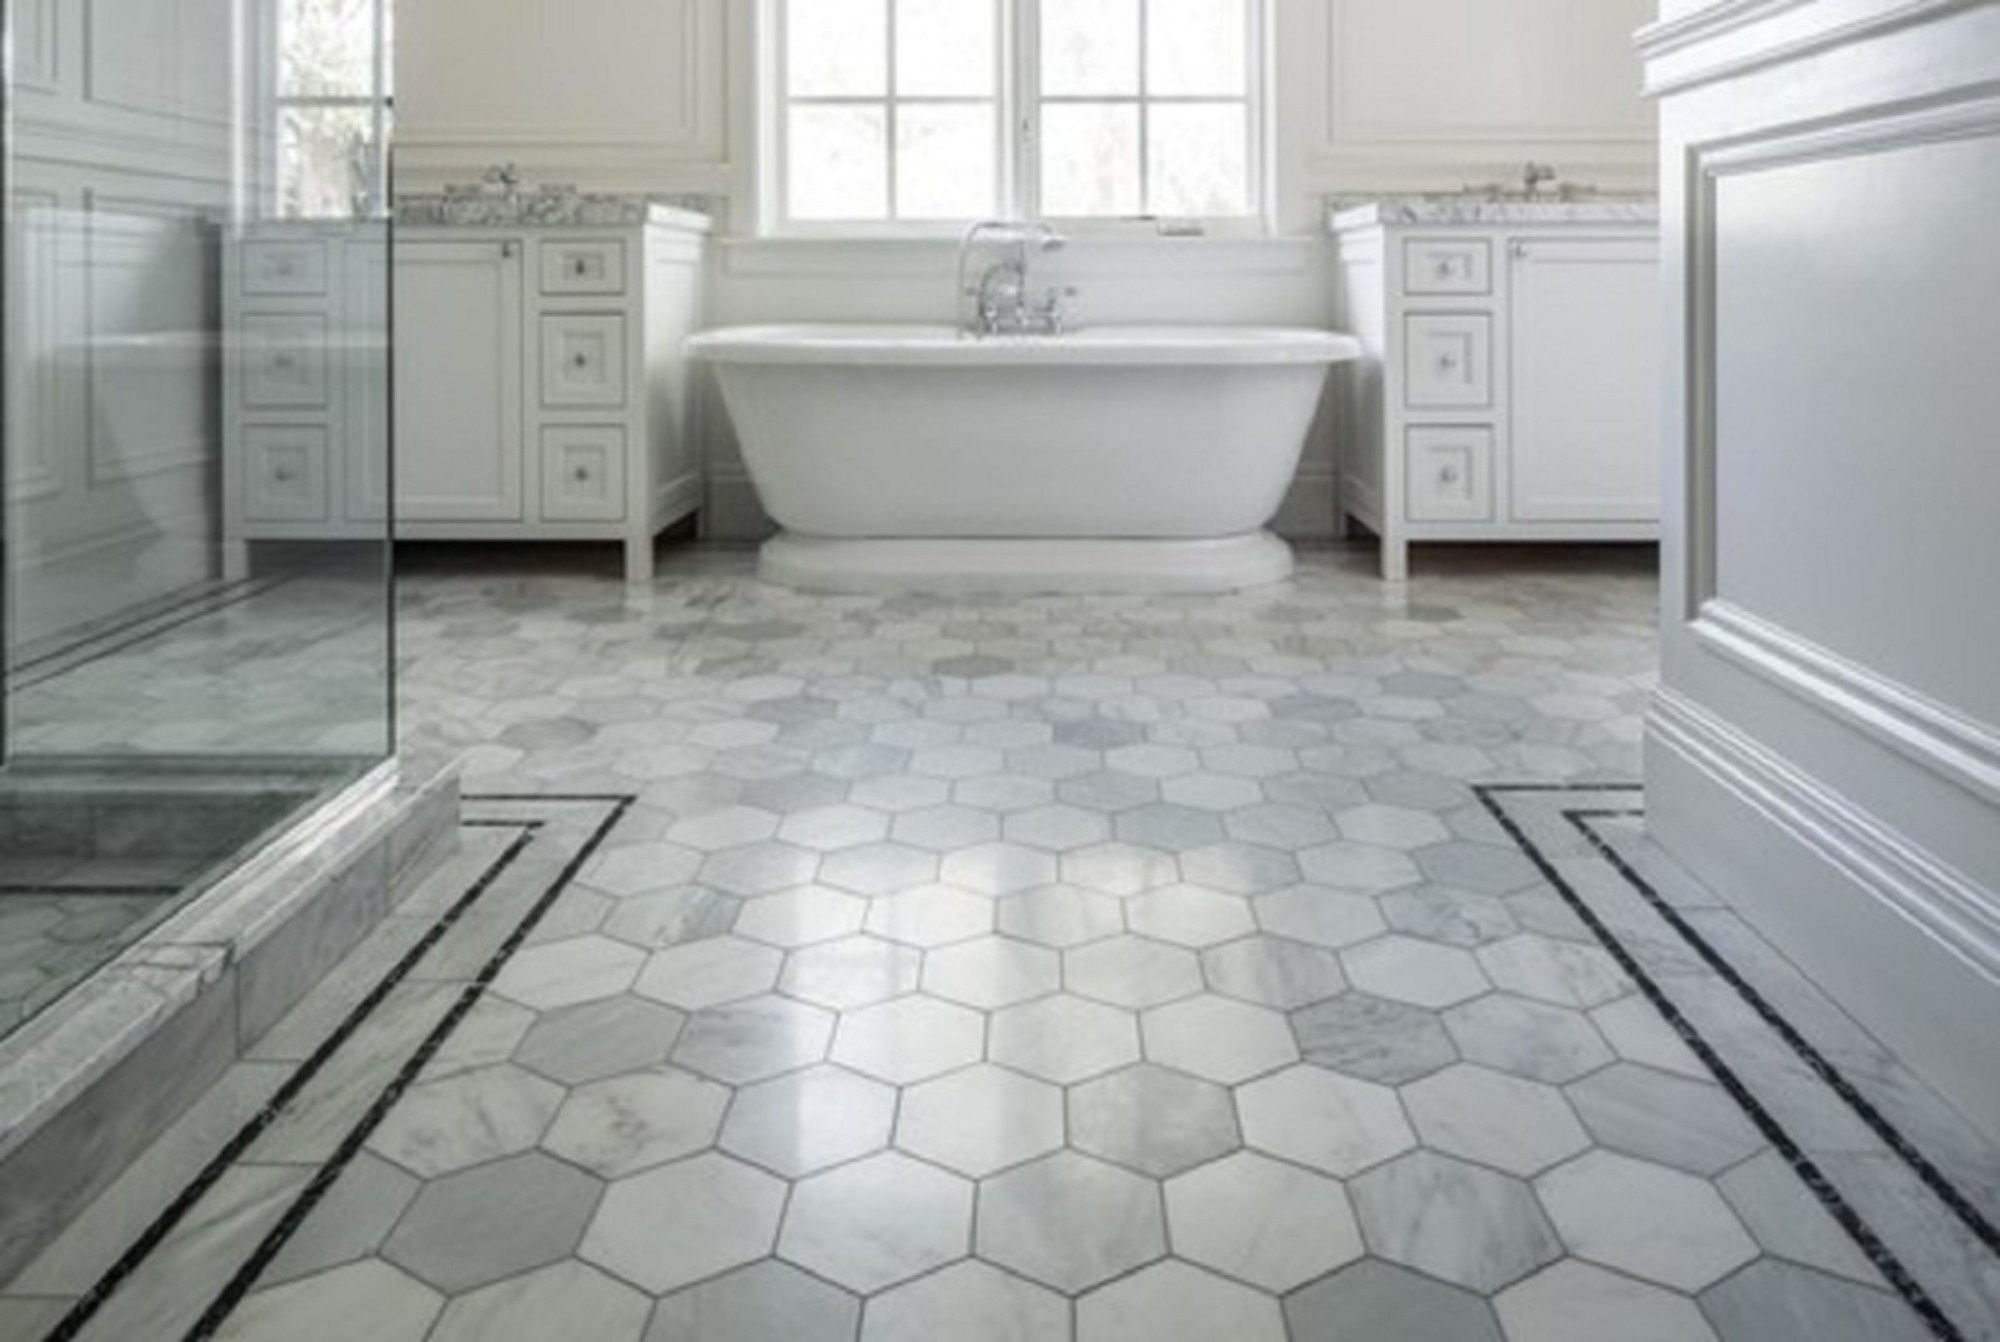 Bathroom Remodeling Payson AZFREE IN HOME ESTIMATES. Remodel bathroom floor